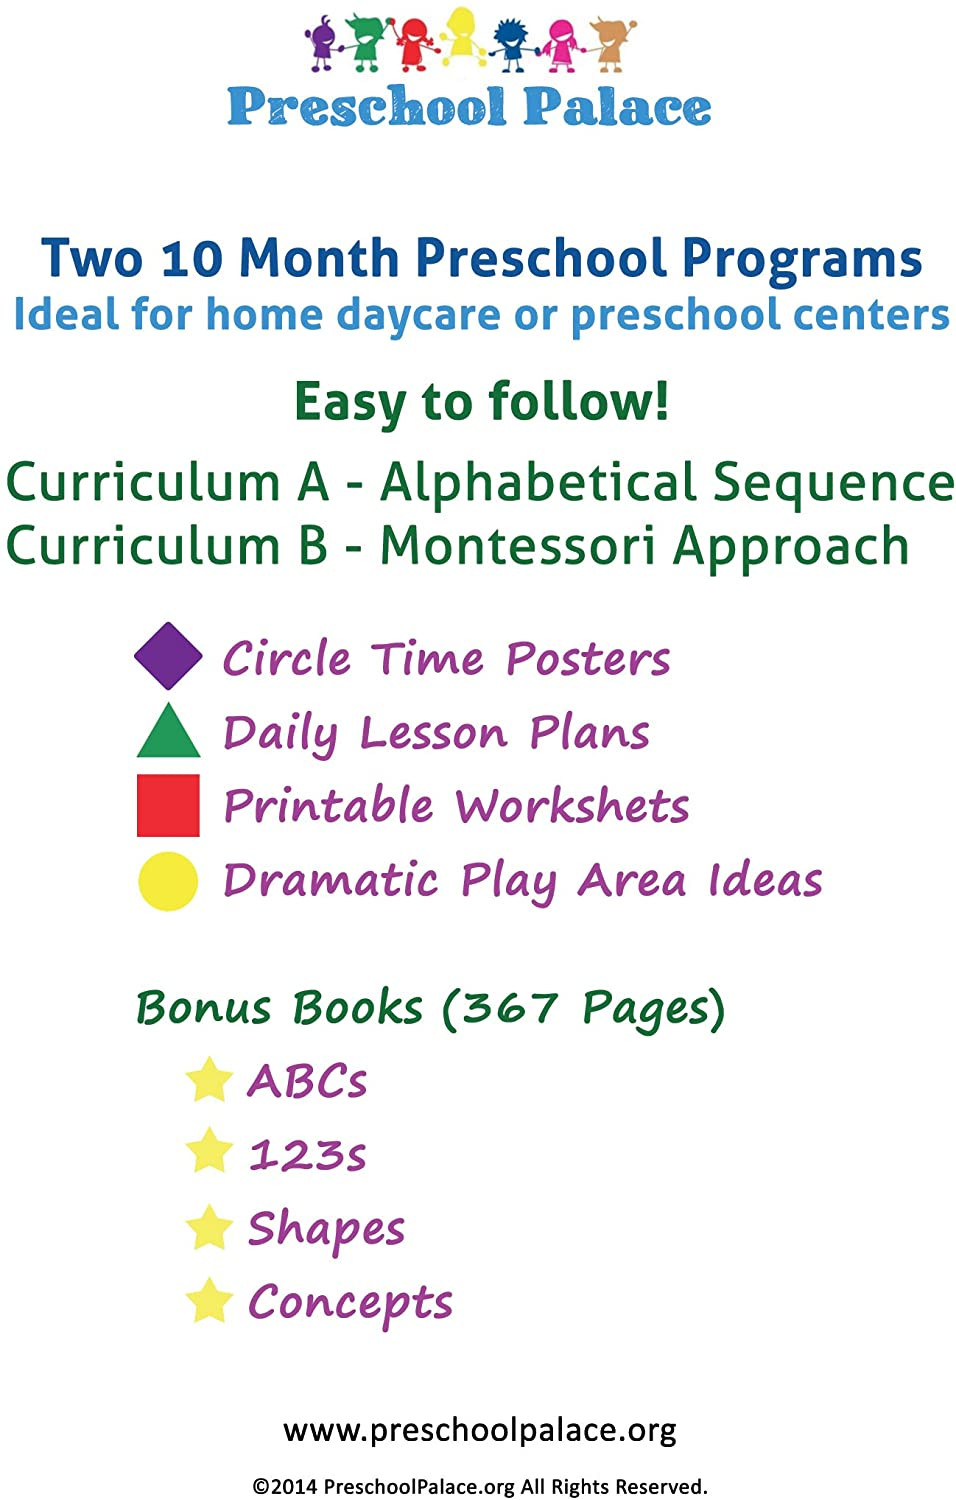 Preschool Palace Curriculum the Ultimate Preschool Curriculum Kit On Cd Printable Workbooks Lesson Plans and Learning Activities for Preschoolers Pre K Kids and toddlers